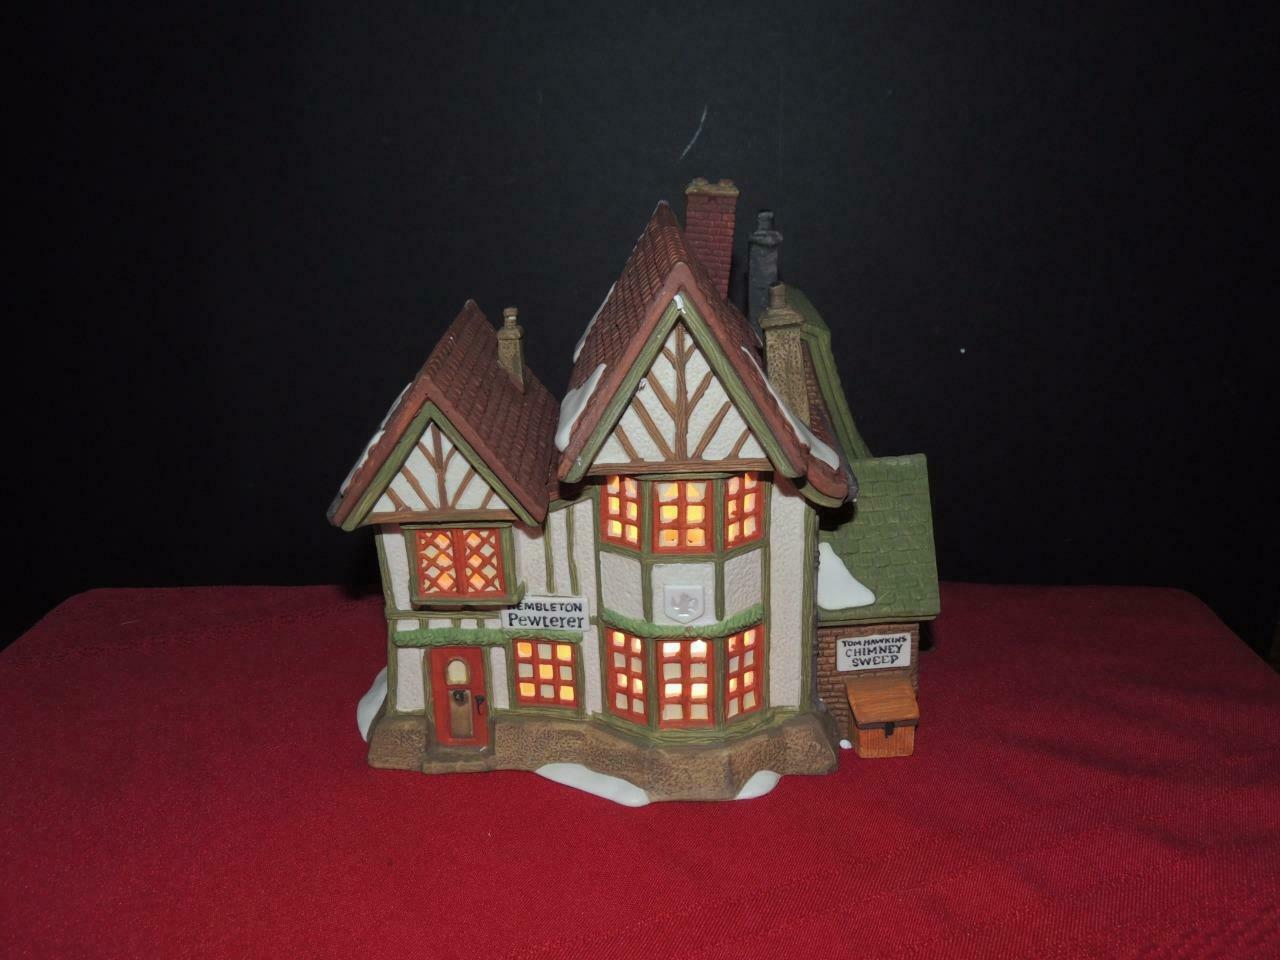 Primary image for Dept 56 Dickens Village Hembleton Pewterer #58009-PB super sale